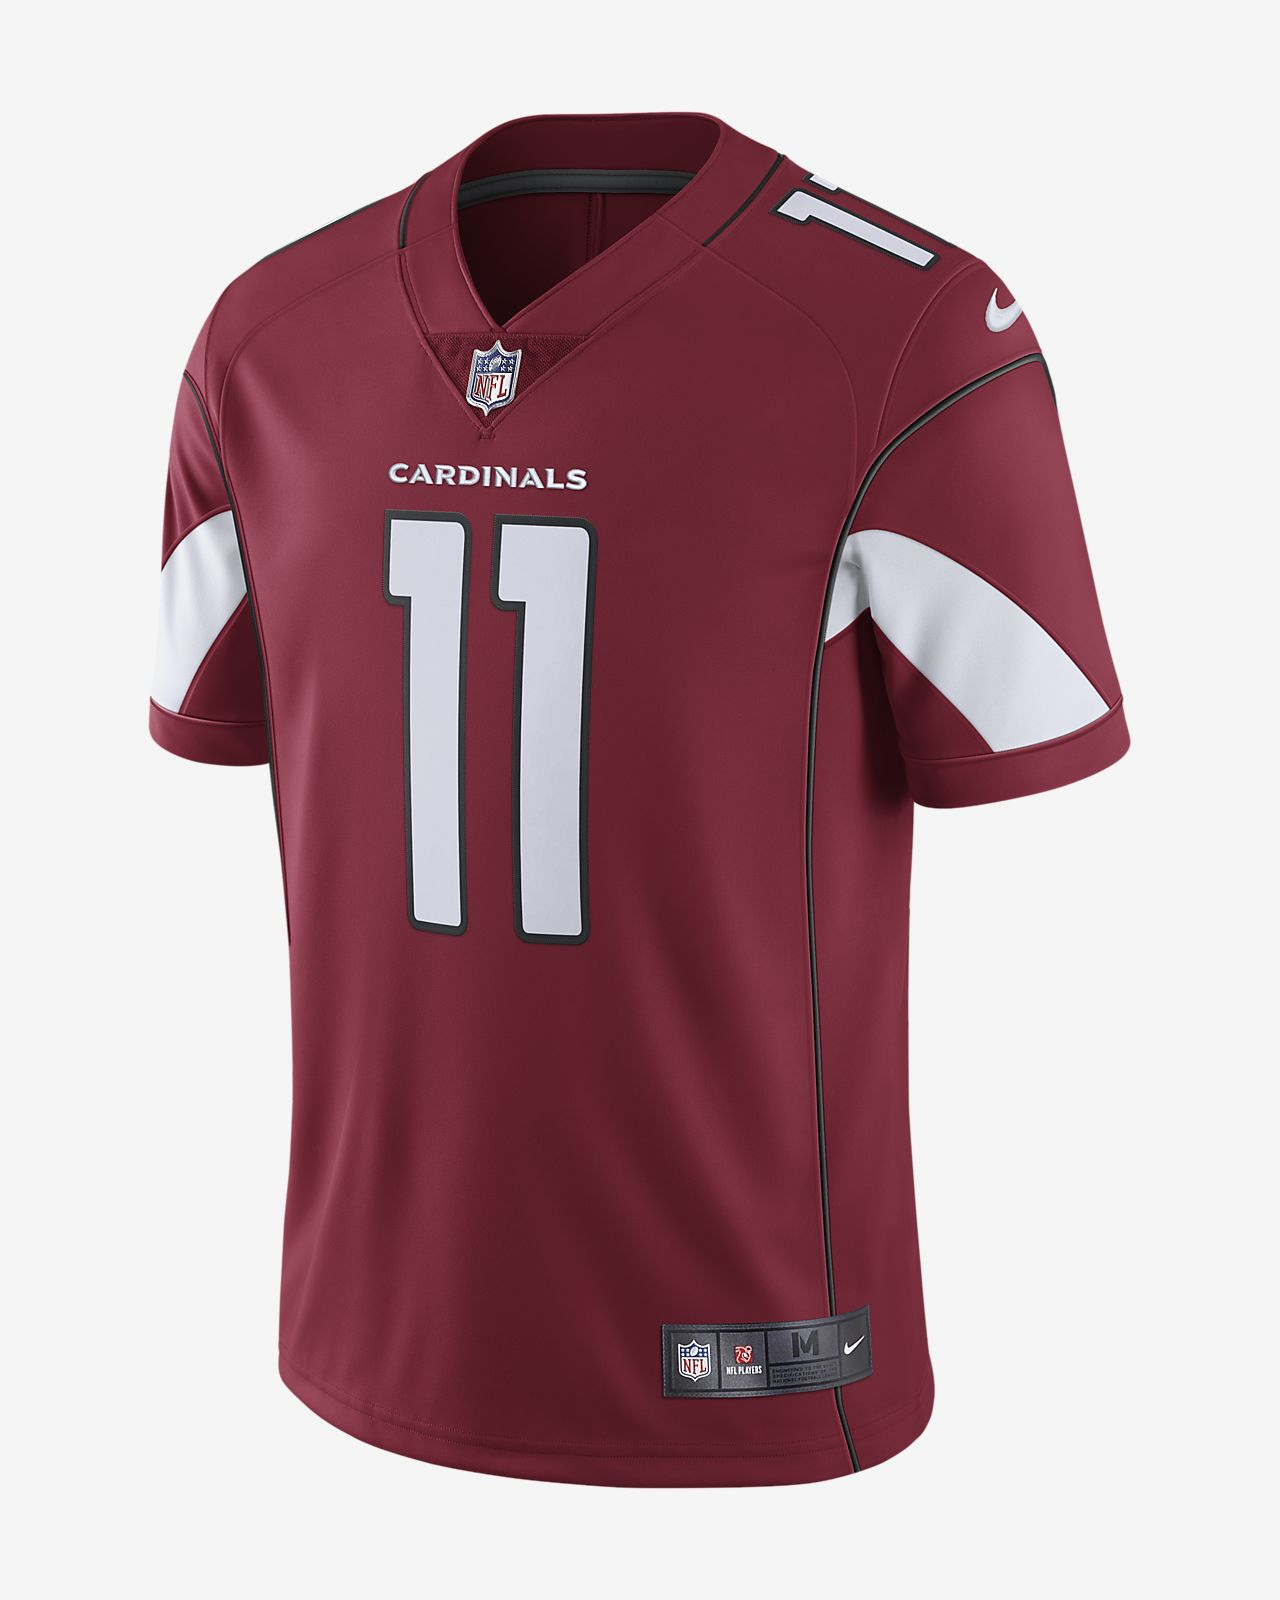 057bcada218 Men s Football Jersey. NFL Arizona Cardinals Limited Jersey (Larry  Fitzgerald)